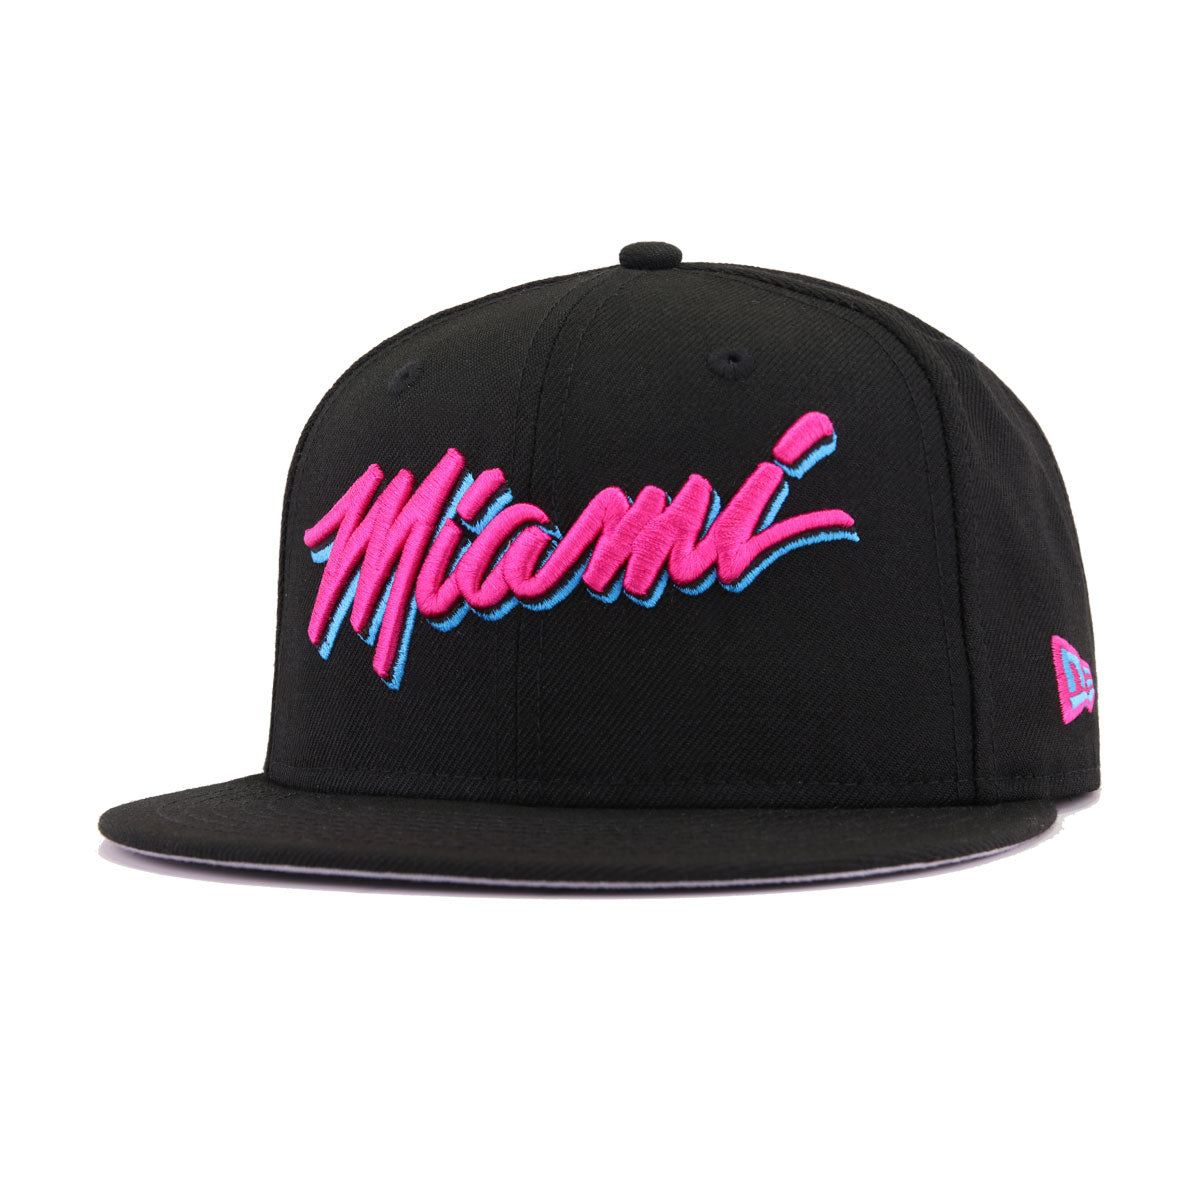 Miami Heat Black Beet Root Purple City Series New Era 9Fifty Snapback